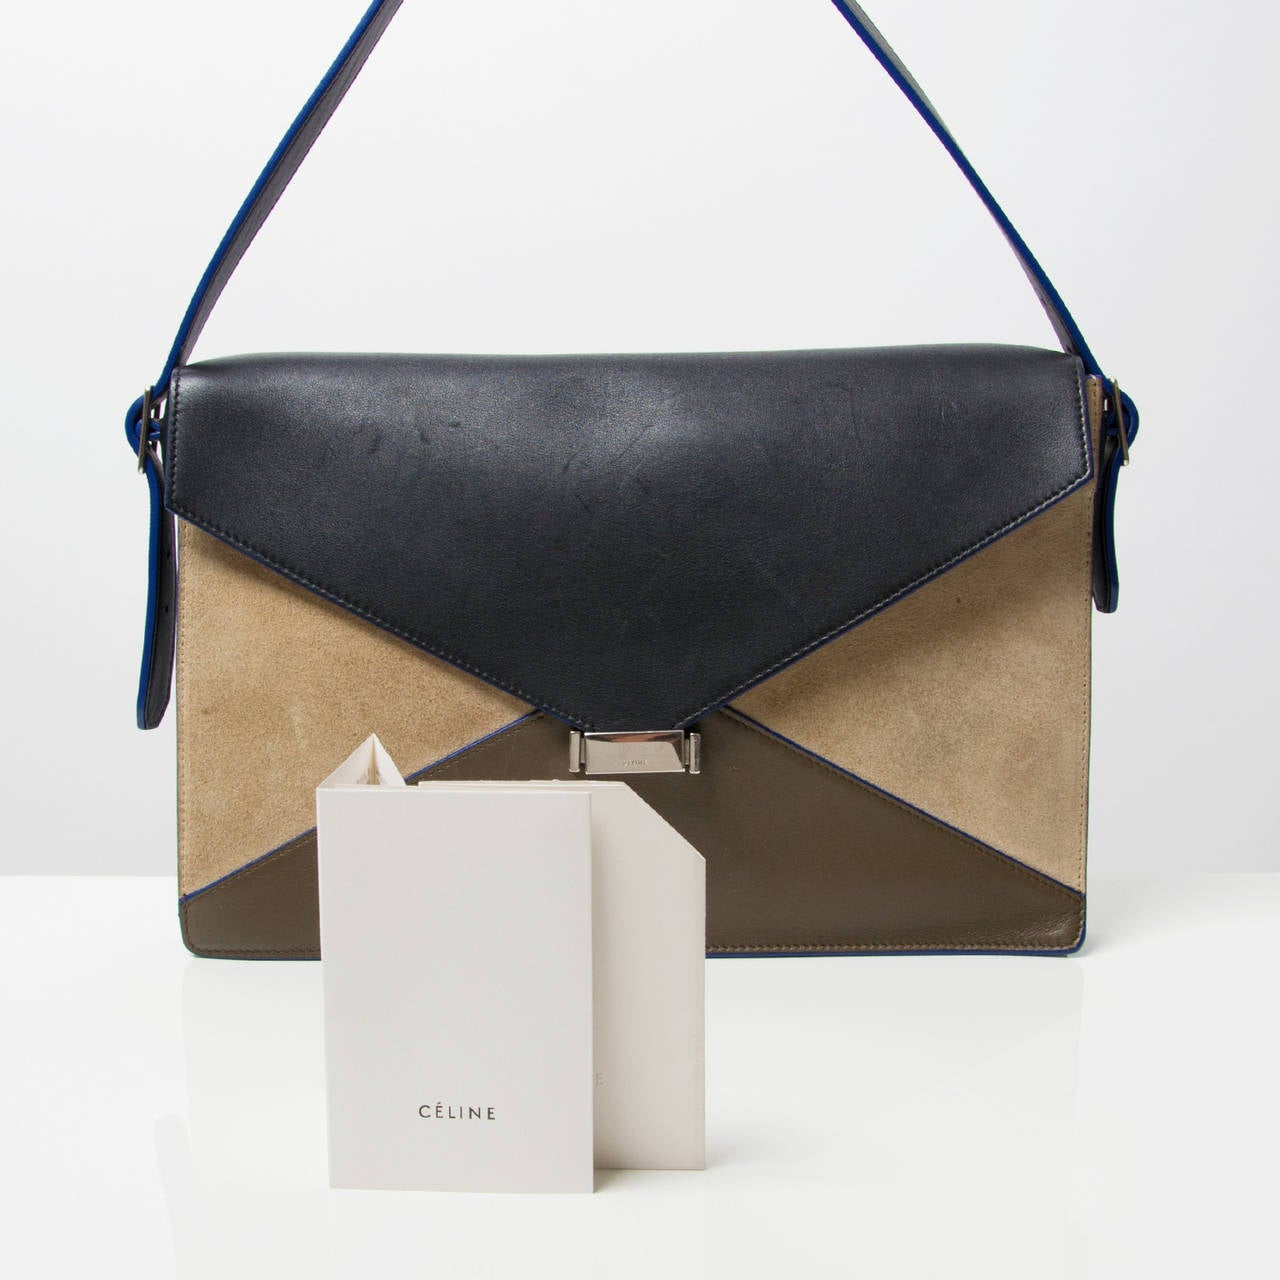 where to buy celine bags online - celine multicolour cloth clutch bag